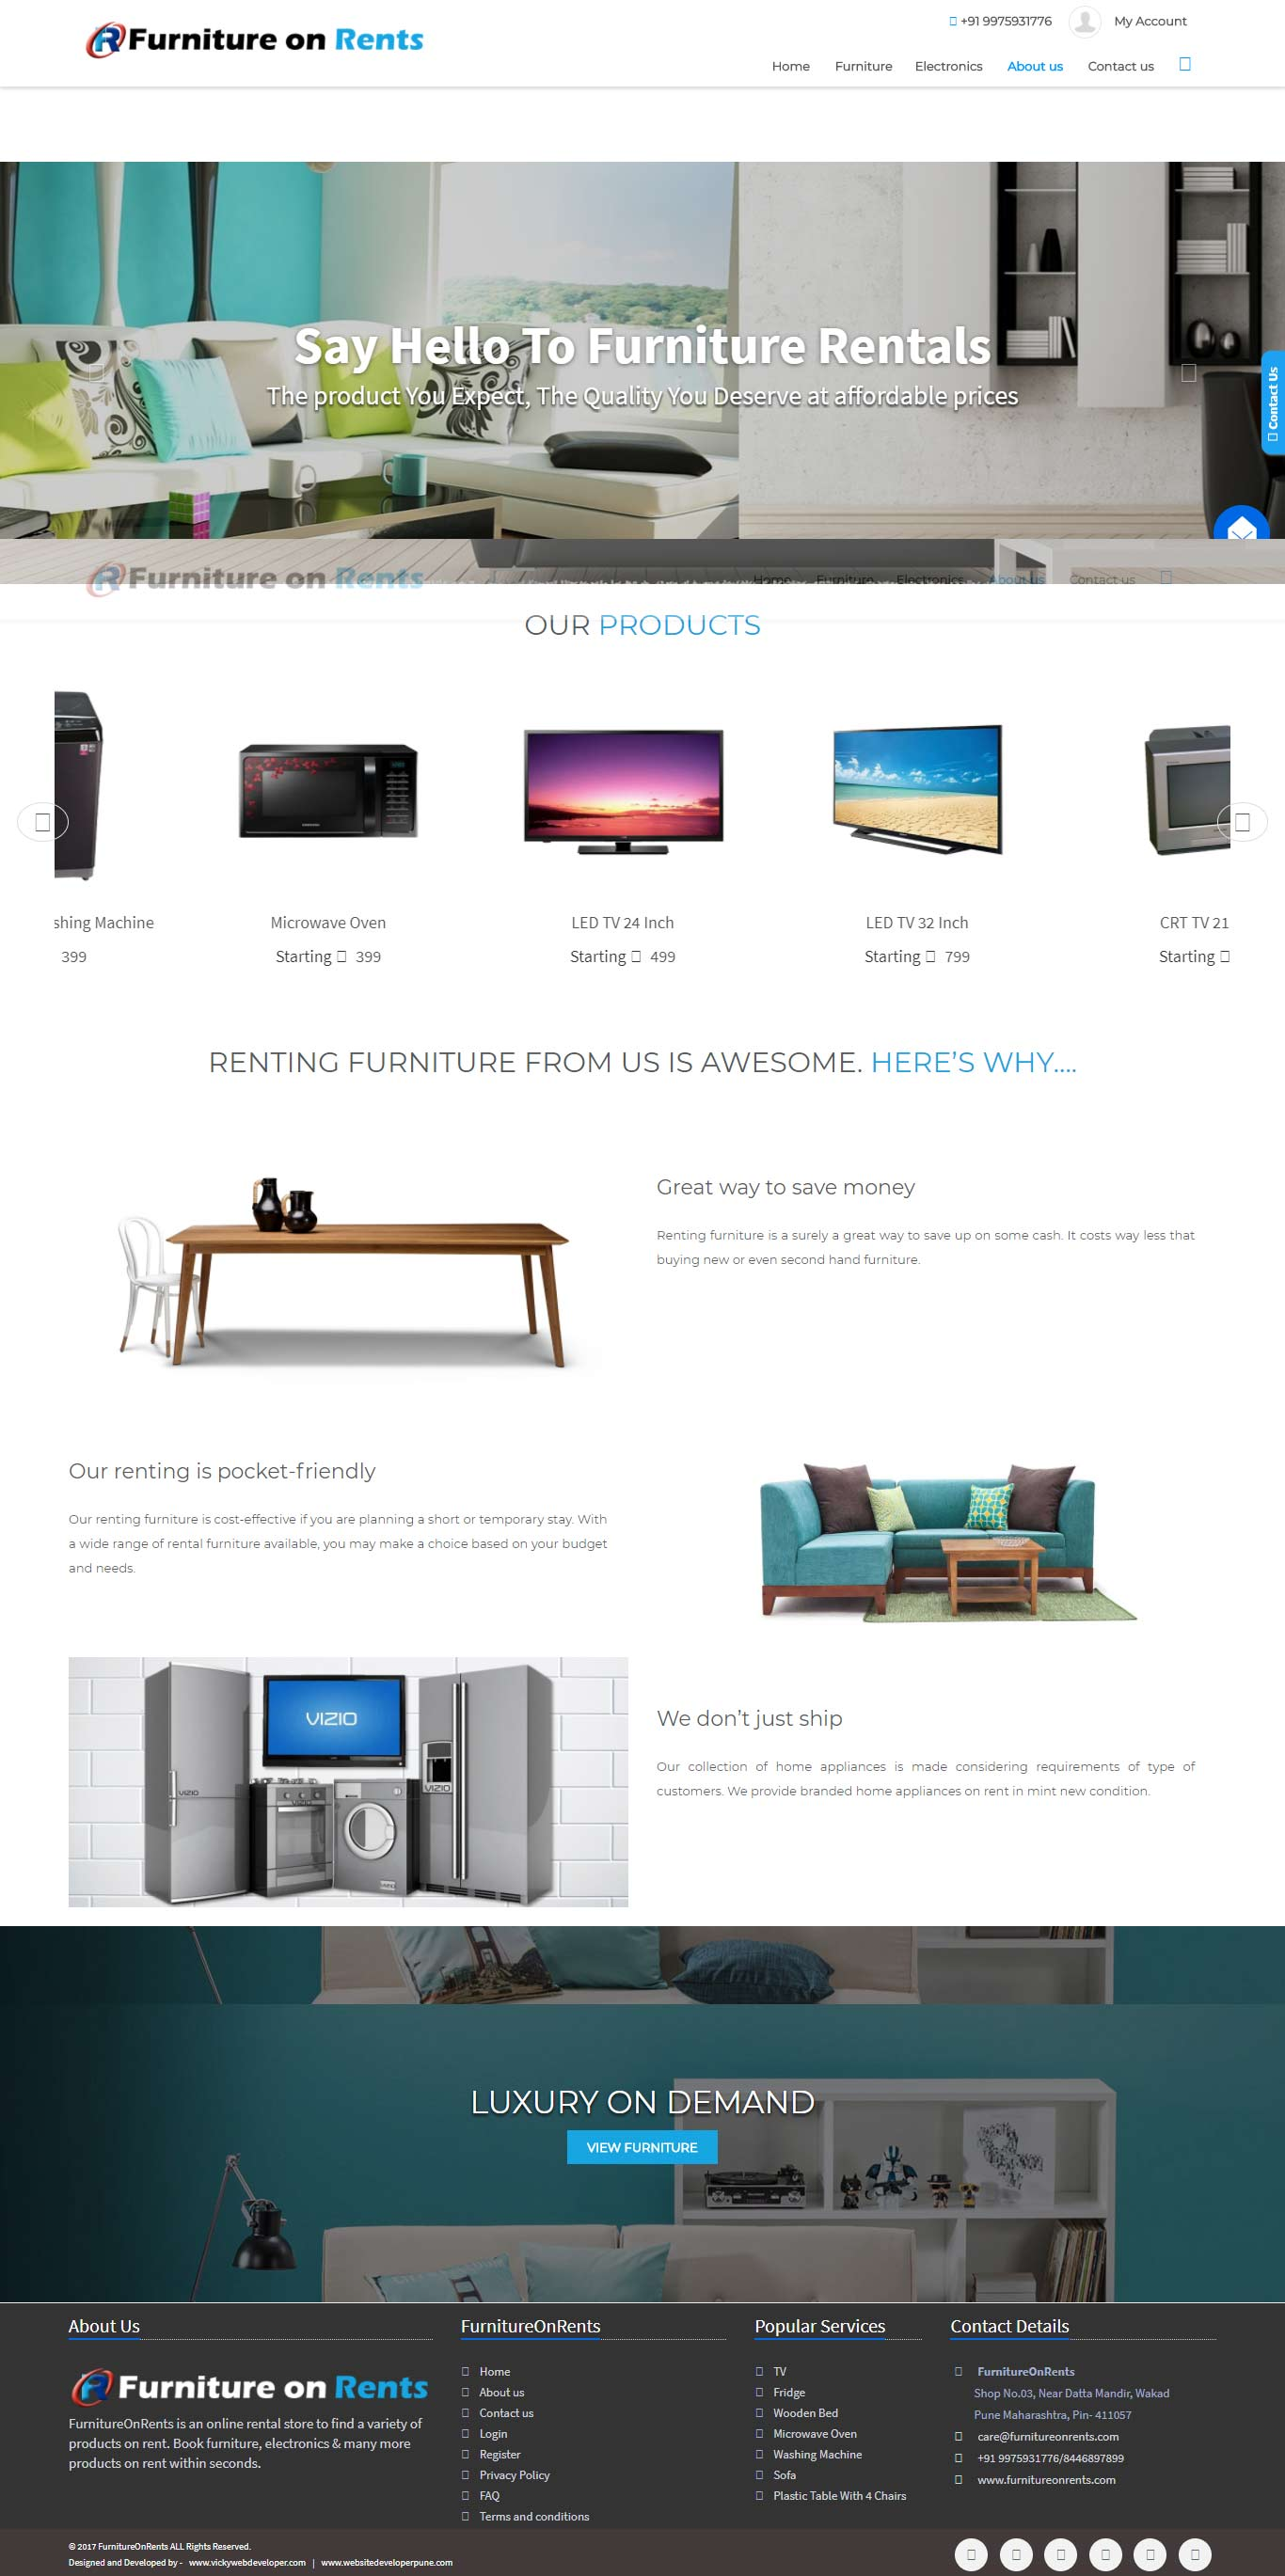 furnitureonrents-com-website-developer-pune-portfolio